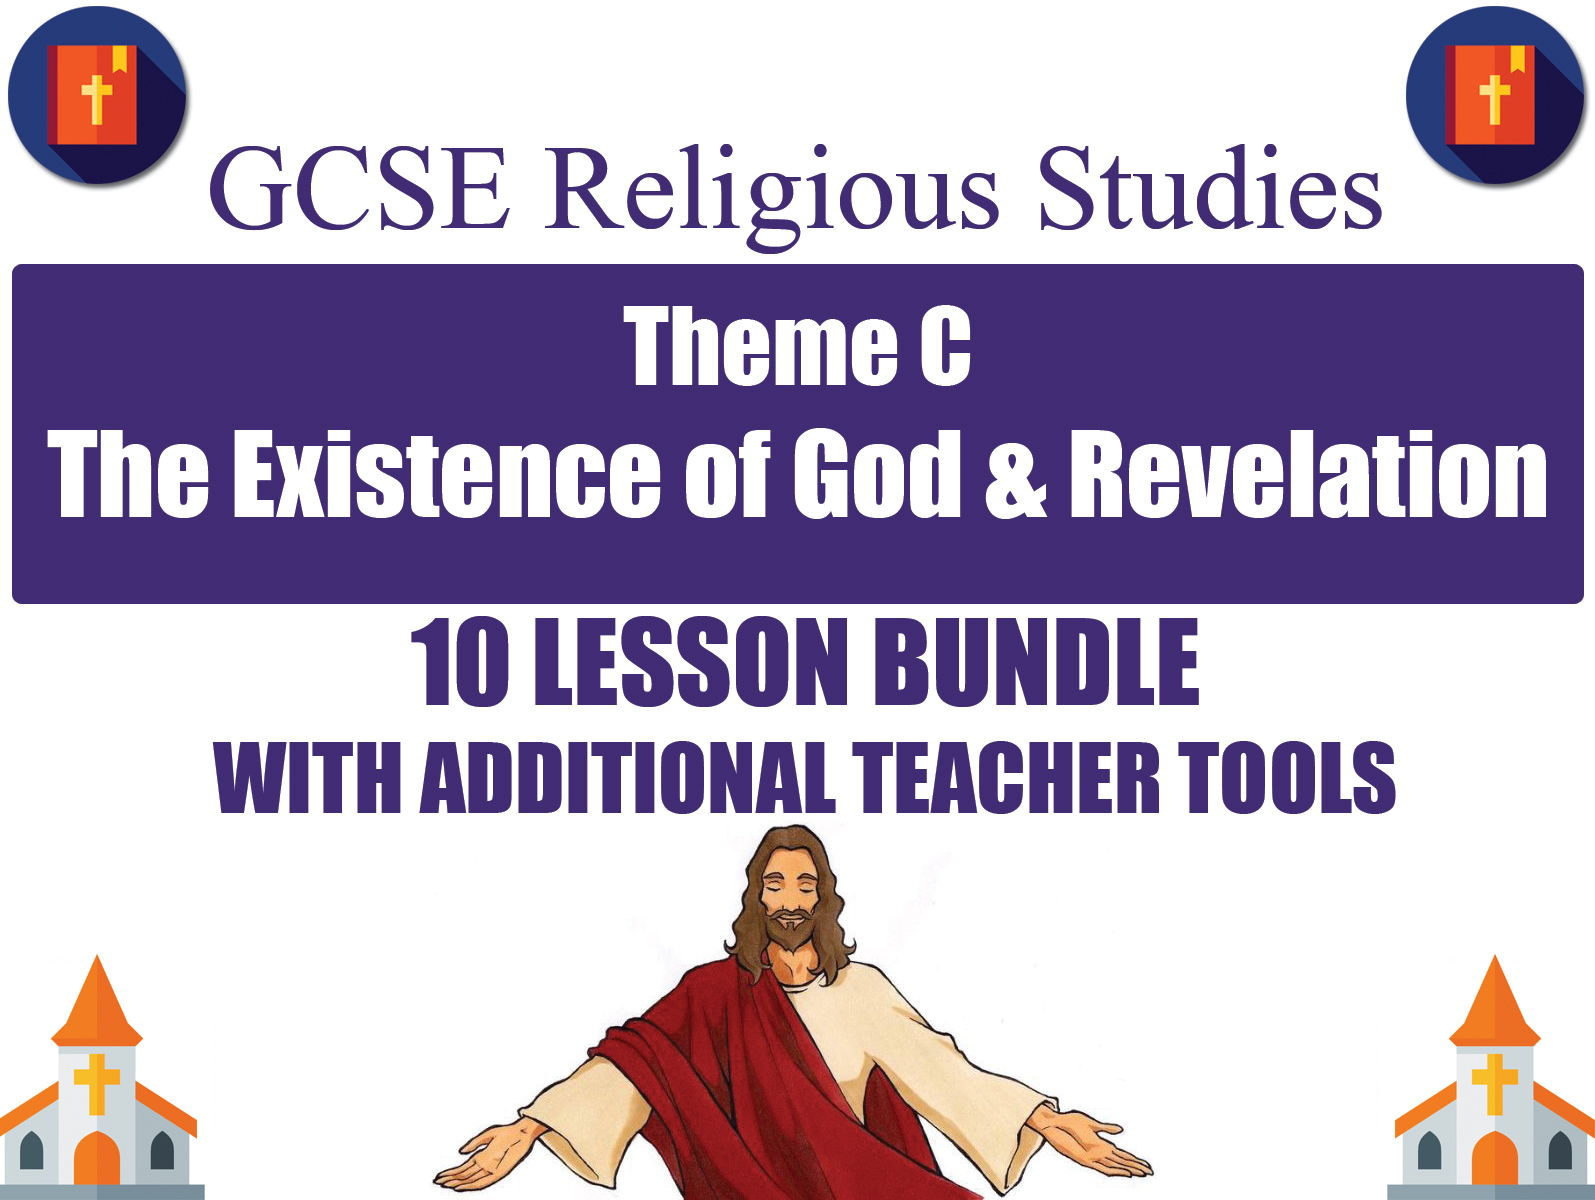 The Existence of God & Revelation (10 Lesson Unit) (AQA GCSE Religious Studies)